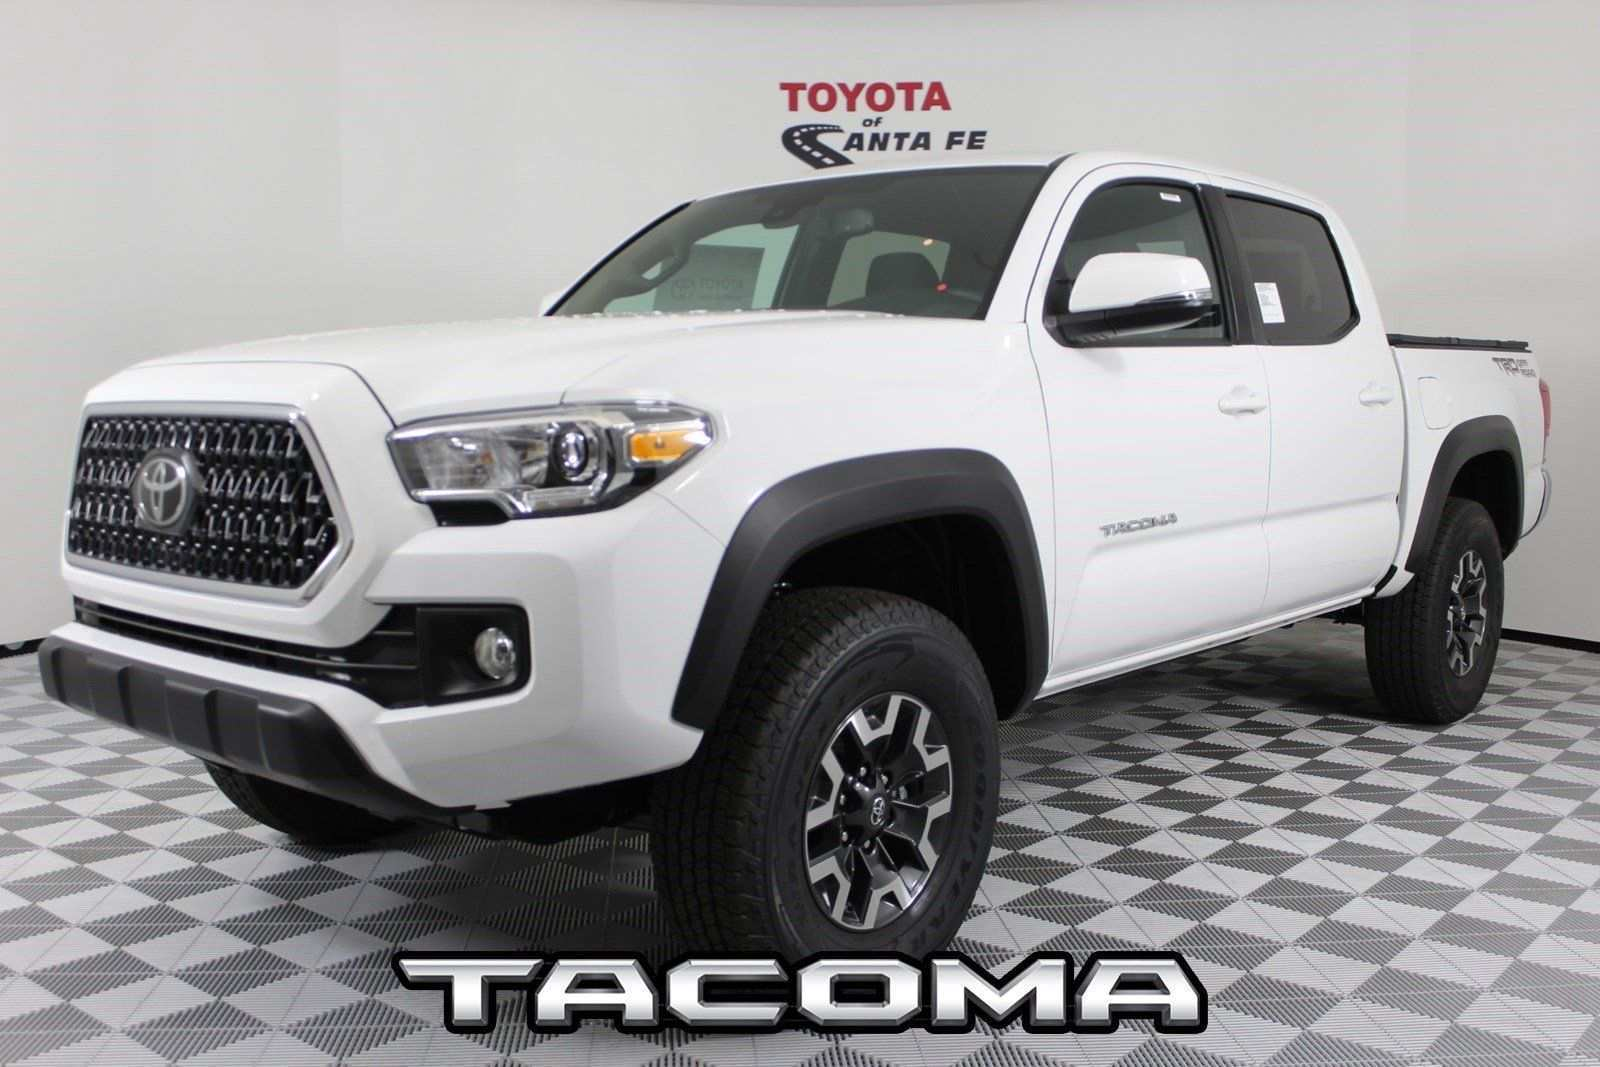 63 New Best Toyota Off Road Vehicle 2019 Specs And Review Redesign and Concept for Best Toyota Off Road Vehicle 2019 Specs And Review